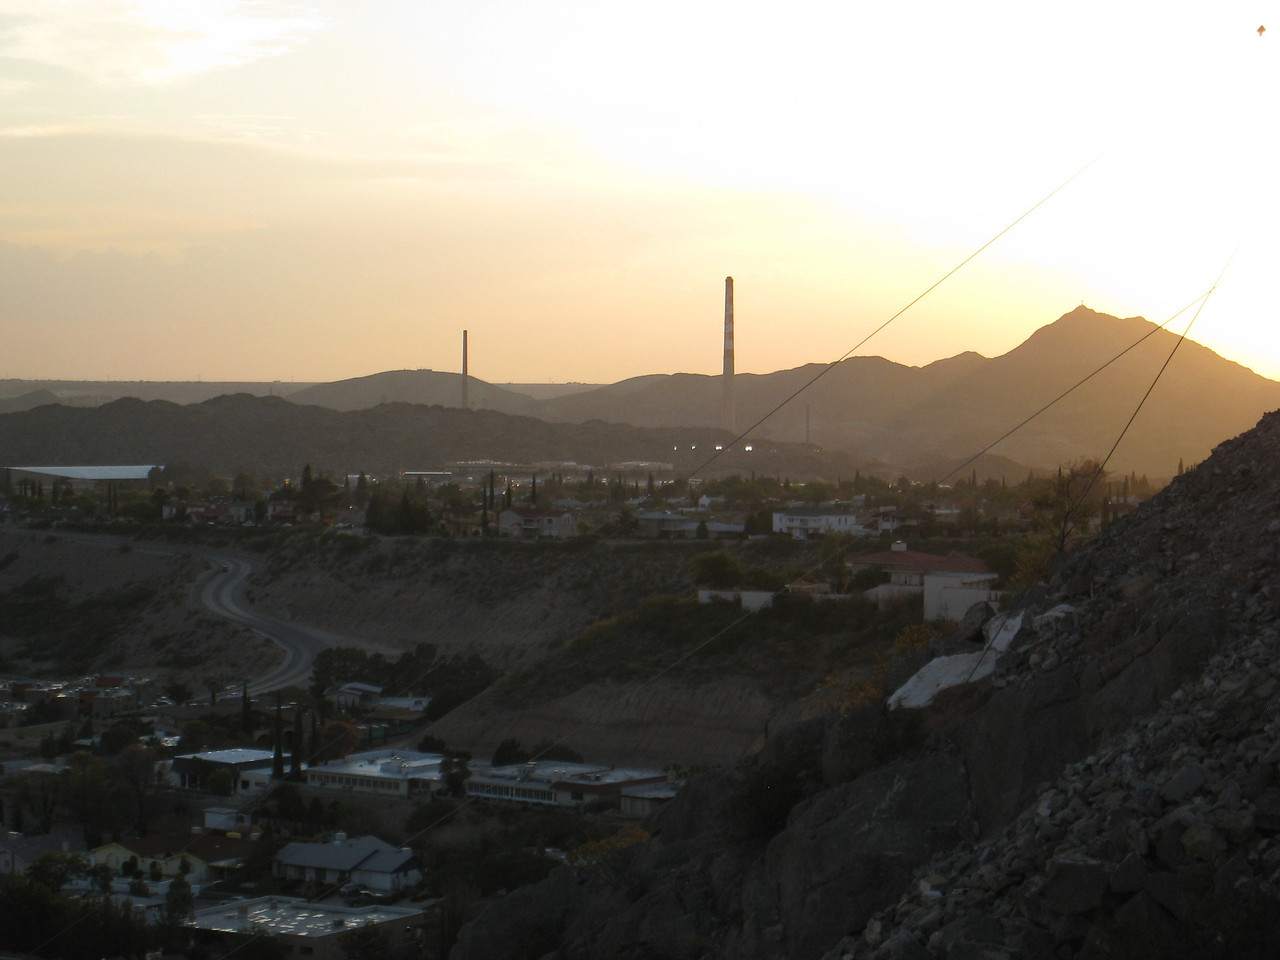 View of West El Paso from Scenic Drive - ASARCO smoke stacks in the distance